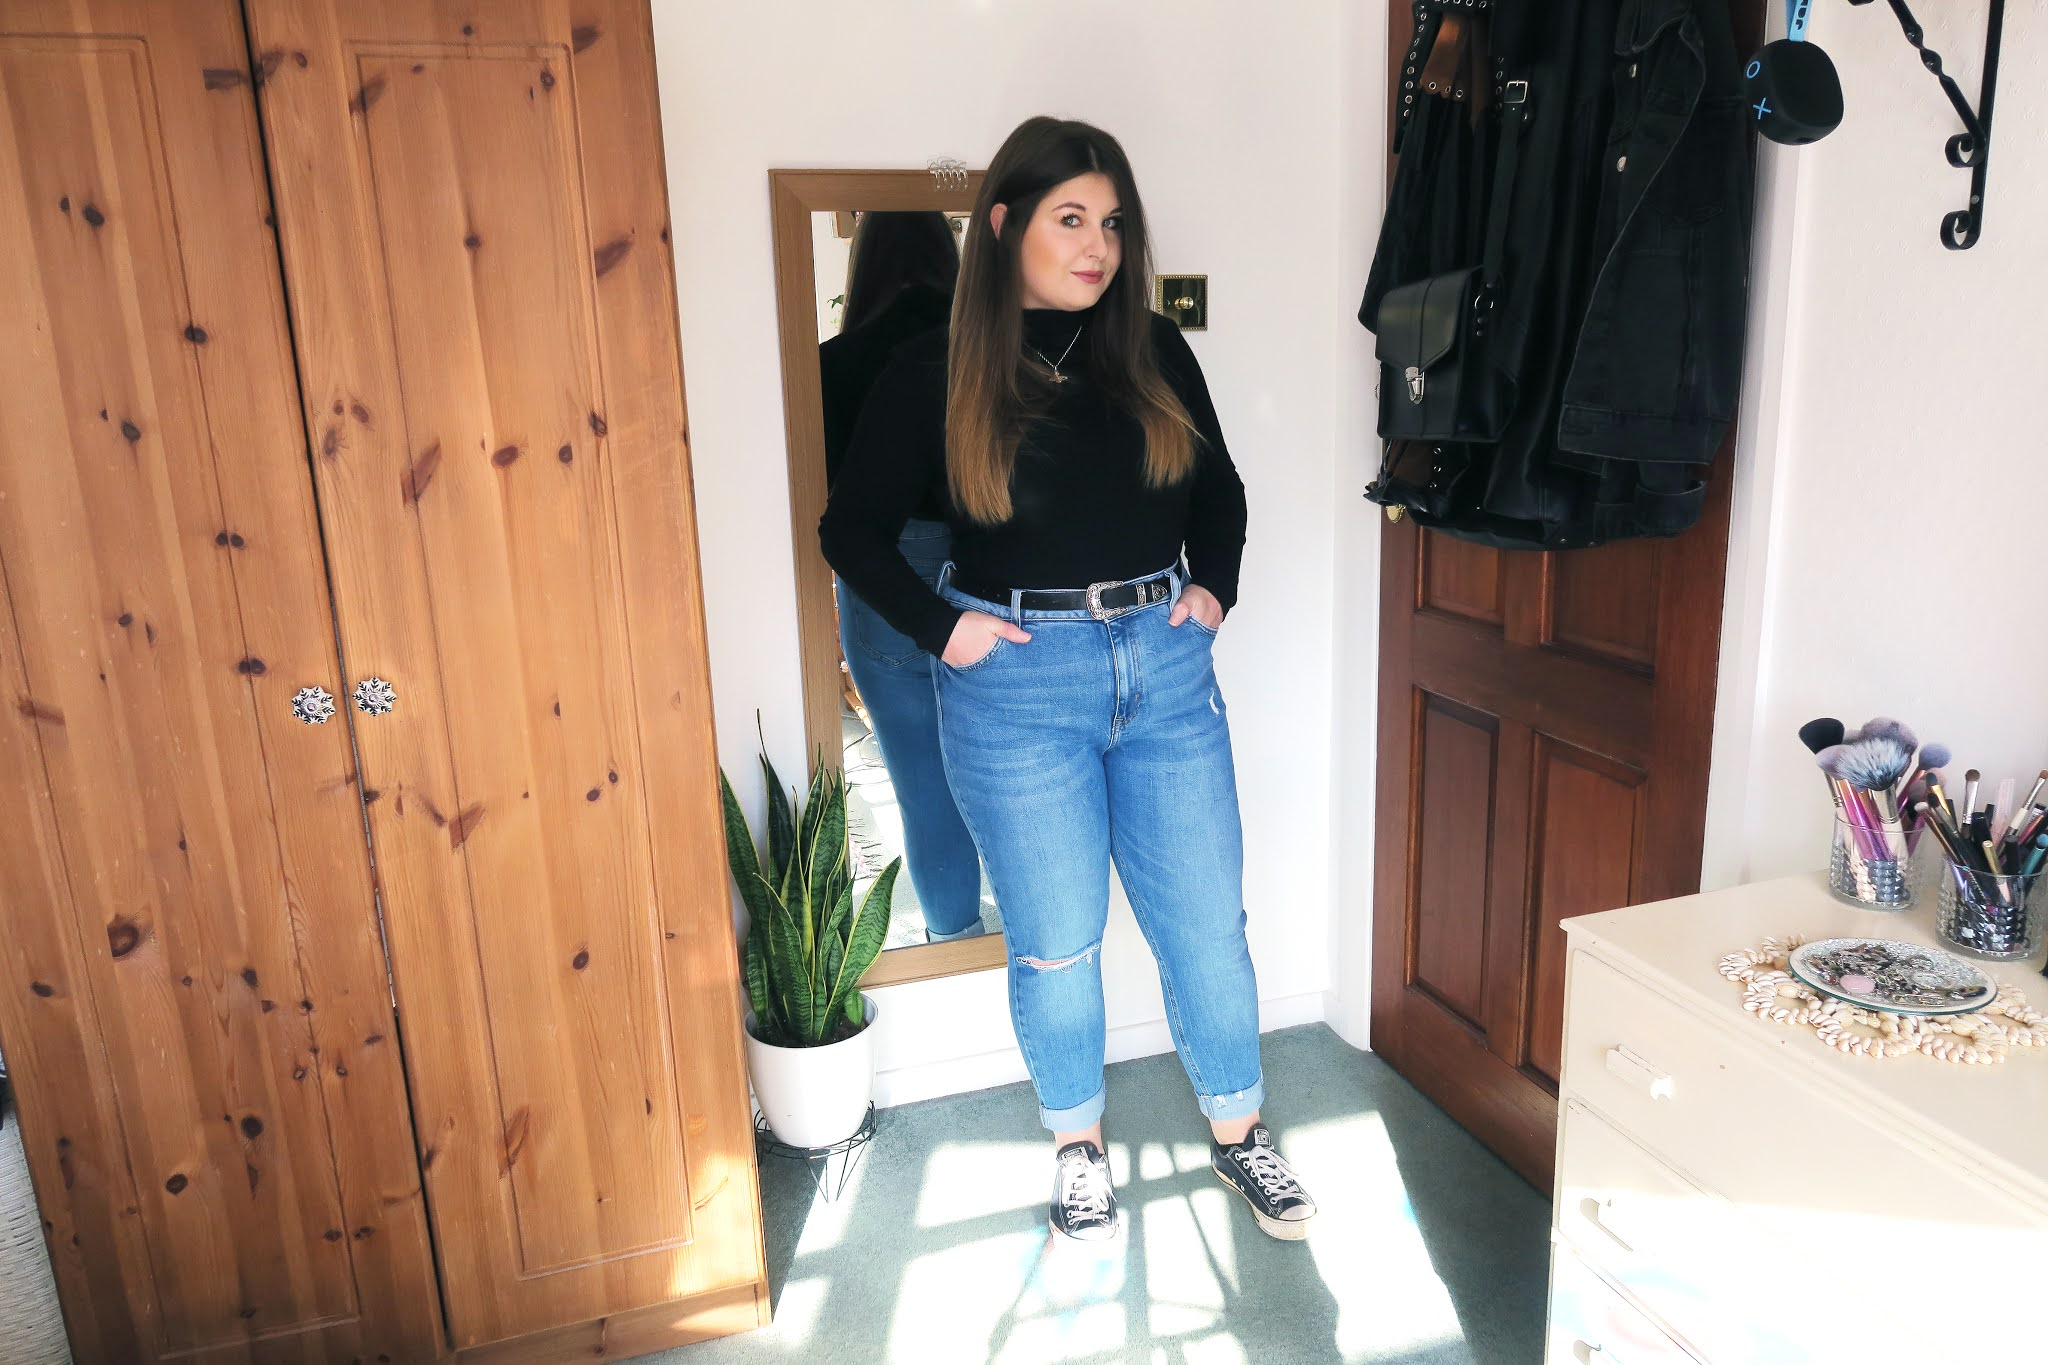 Grace is wearing a black roll neck top tucked into a pair of blue high waisted jeans. On her feet she is wearing a pair of black converse.